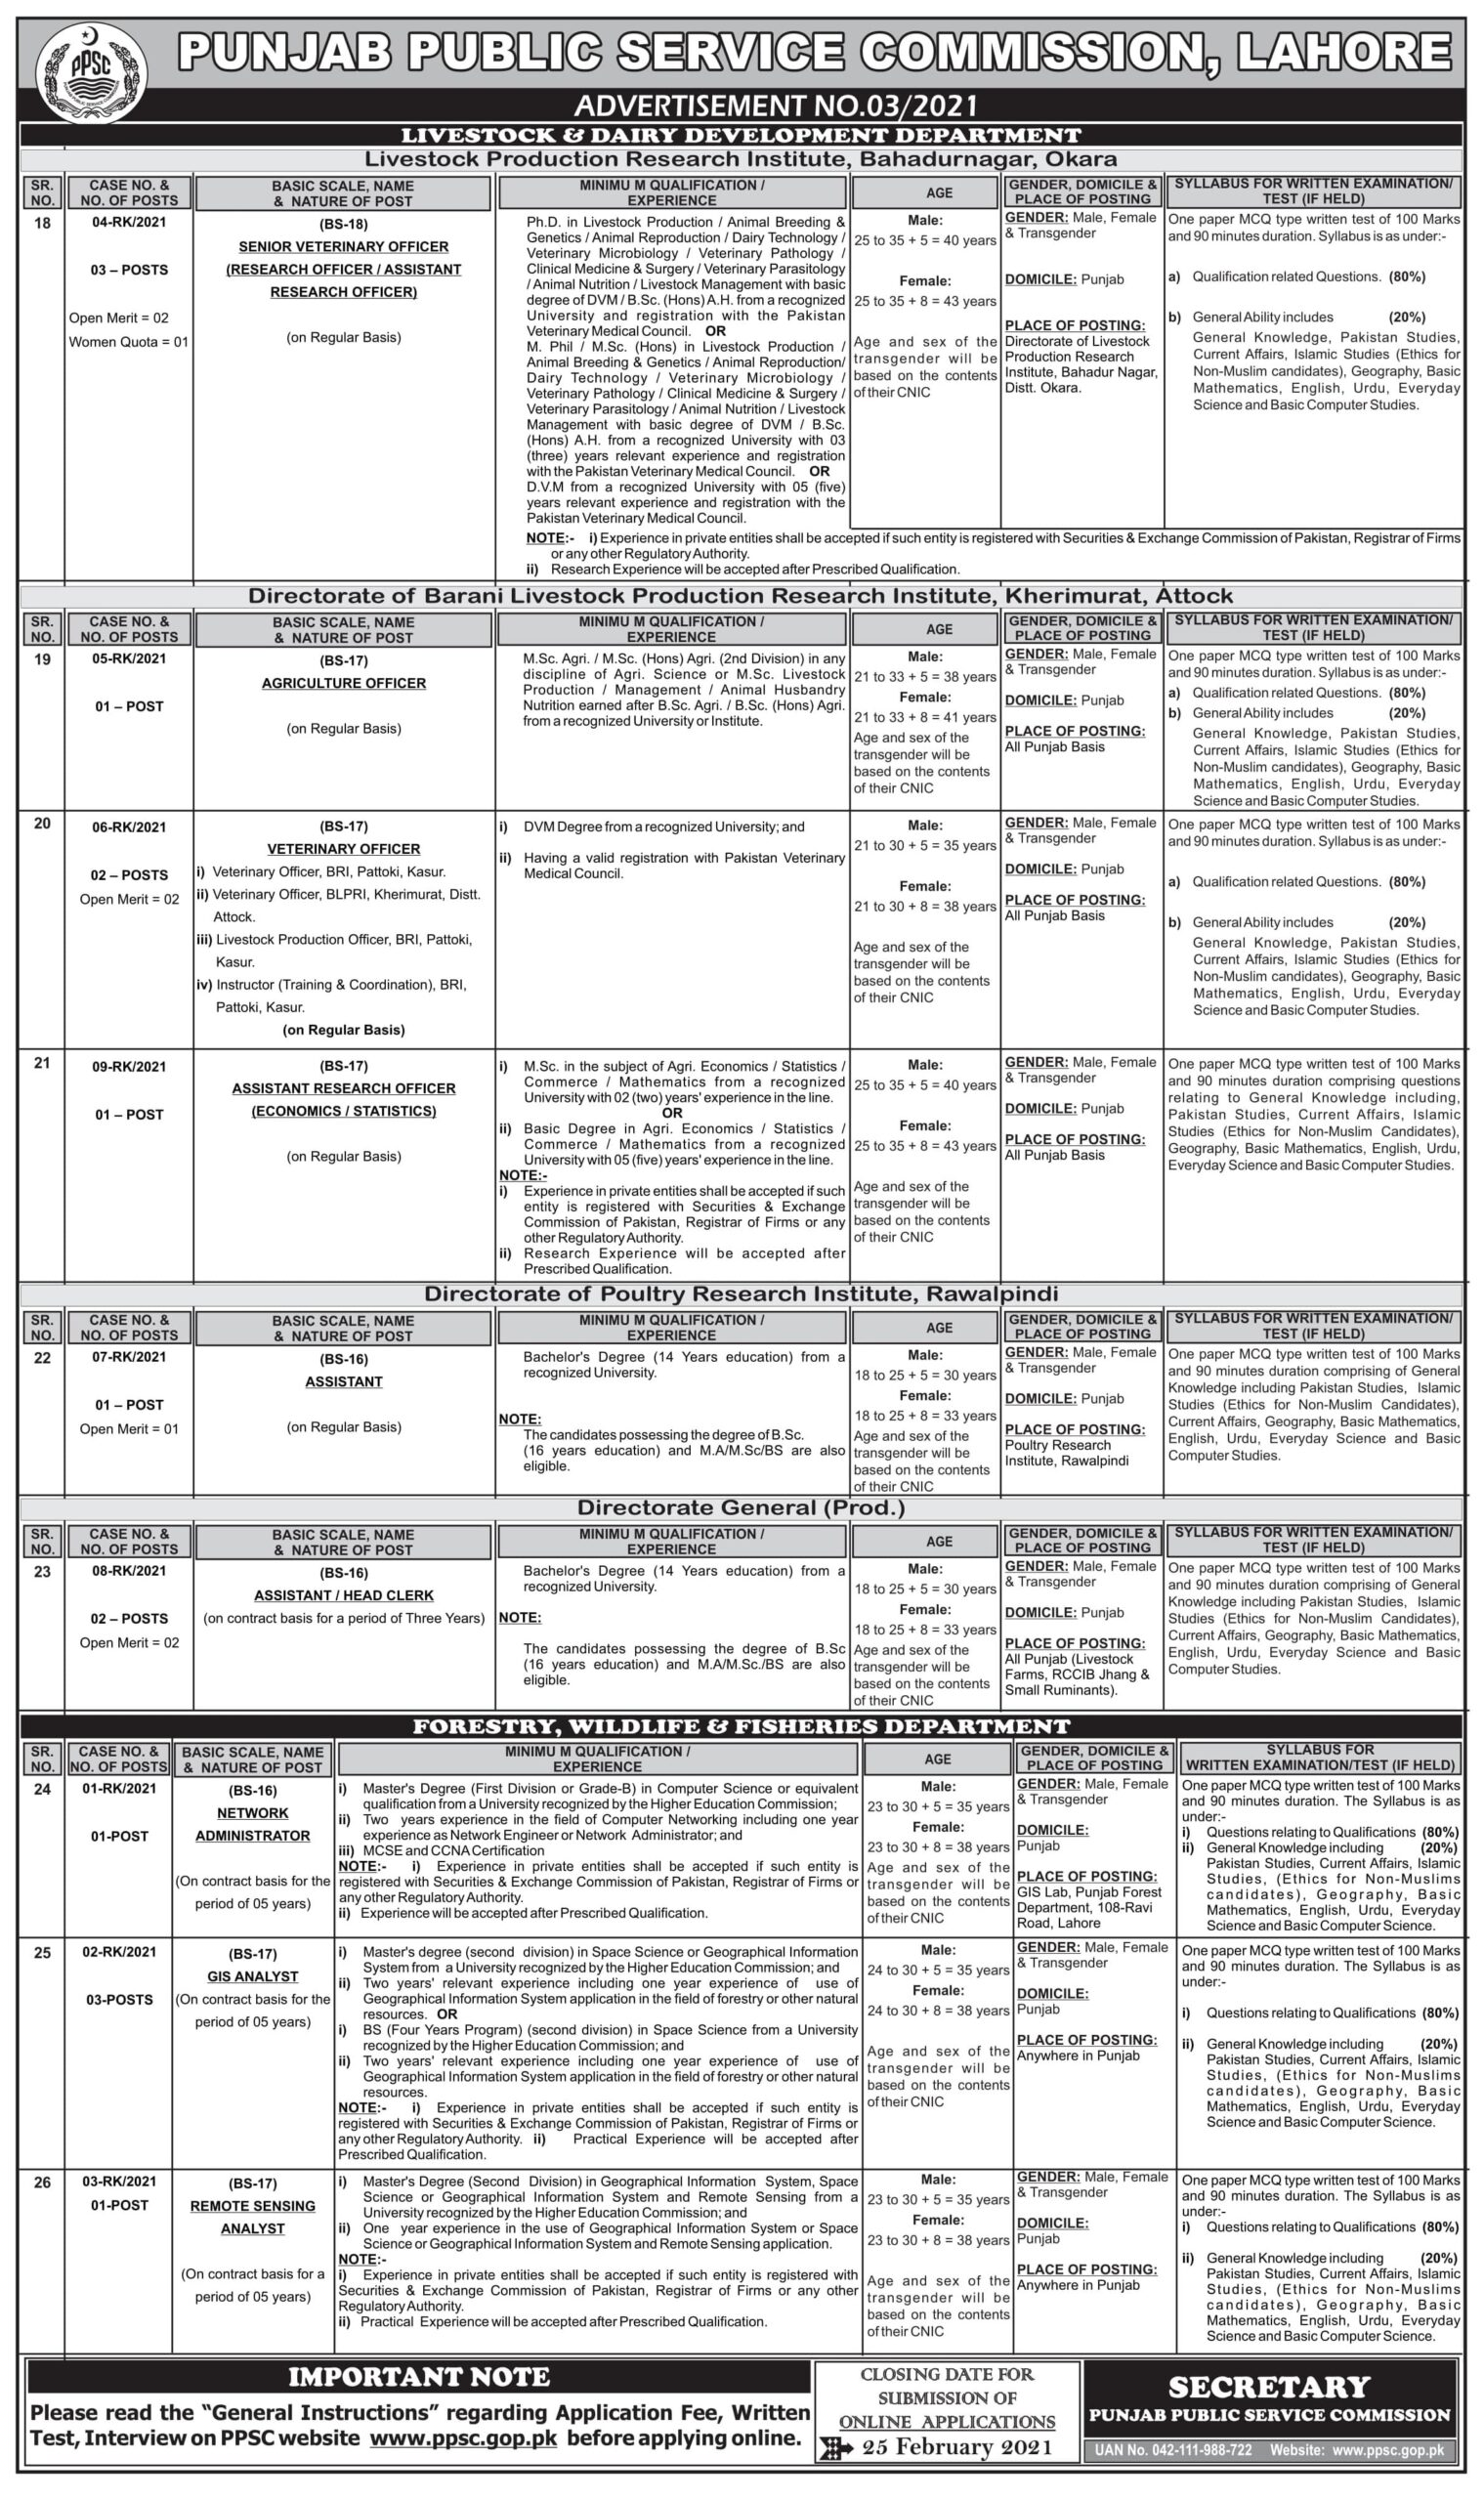 PPSC Jobs 2021 Advertisement No 03